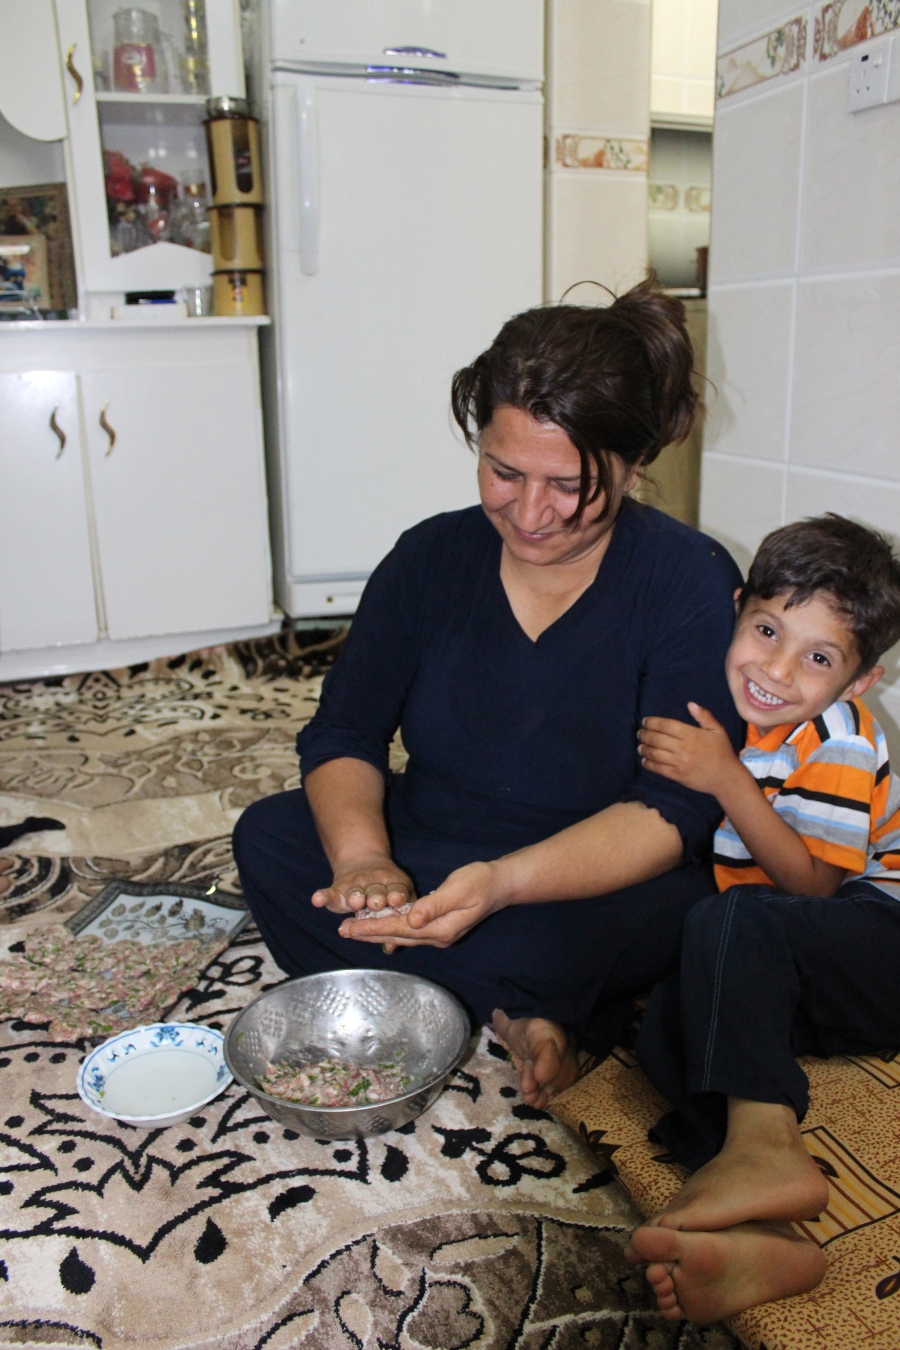 Making shufte while Hama clings on and disrupts the whole dinner-making process with his wild Kurdish child ways.